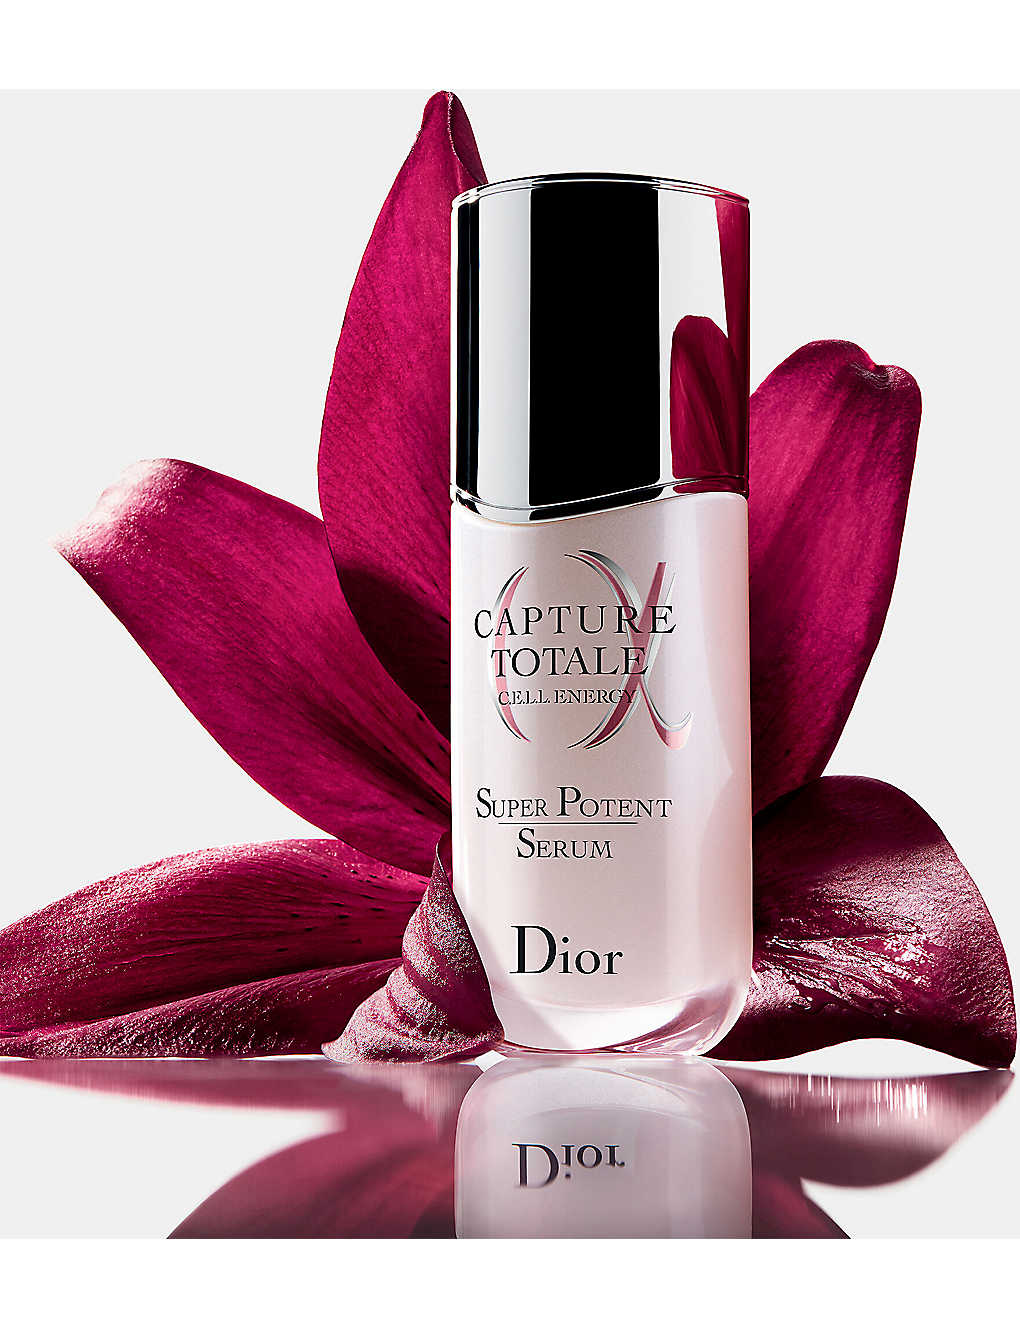 Dior Capture Totale Total Age-Defying Skincare Ritual Gift Set